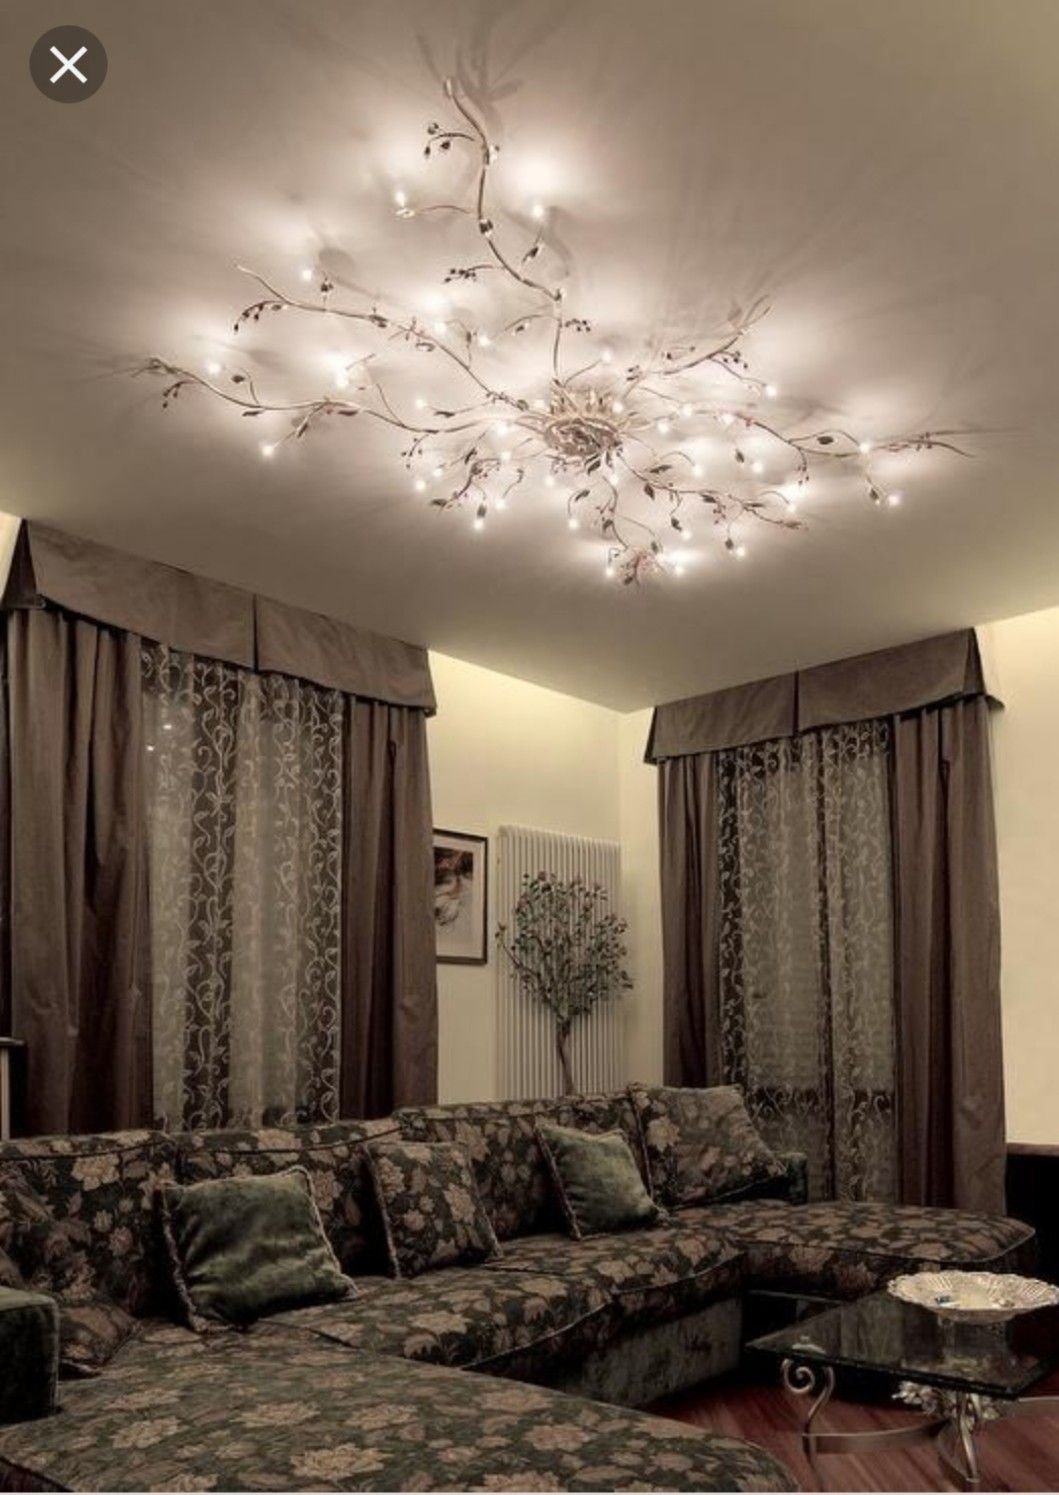 Home upgrades image by sweet bedroom ceiling